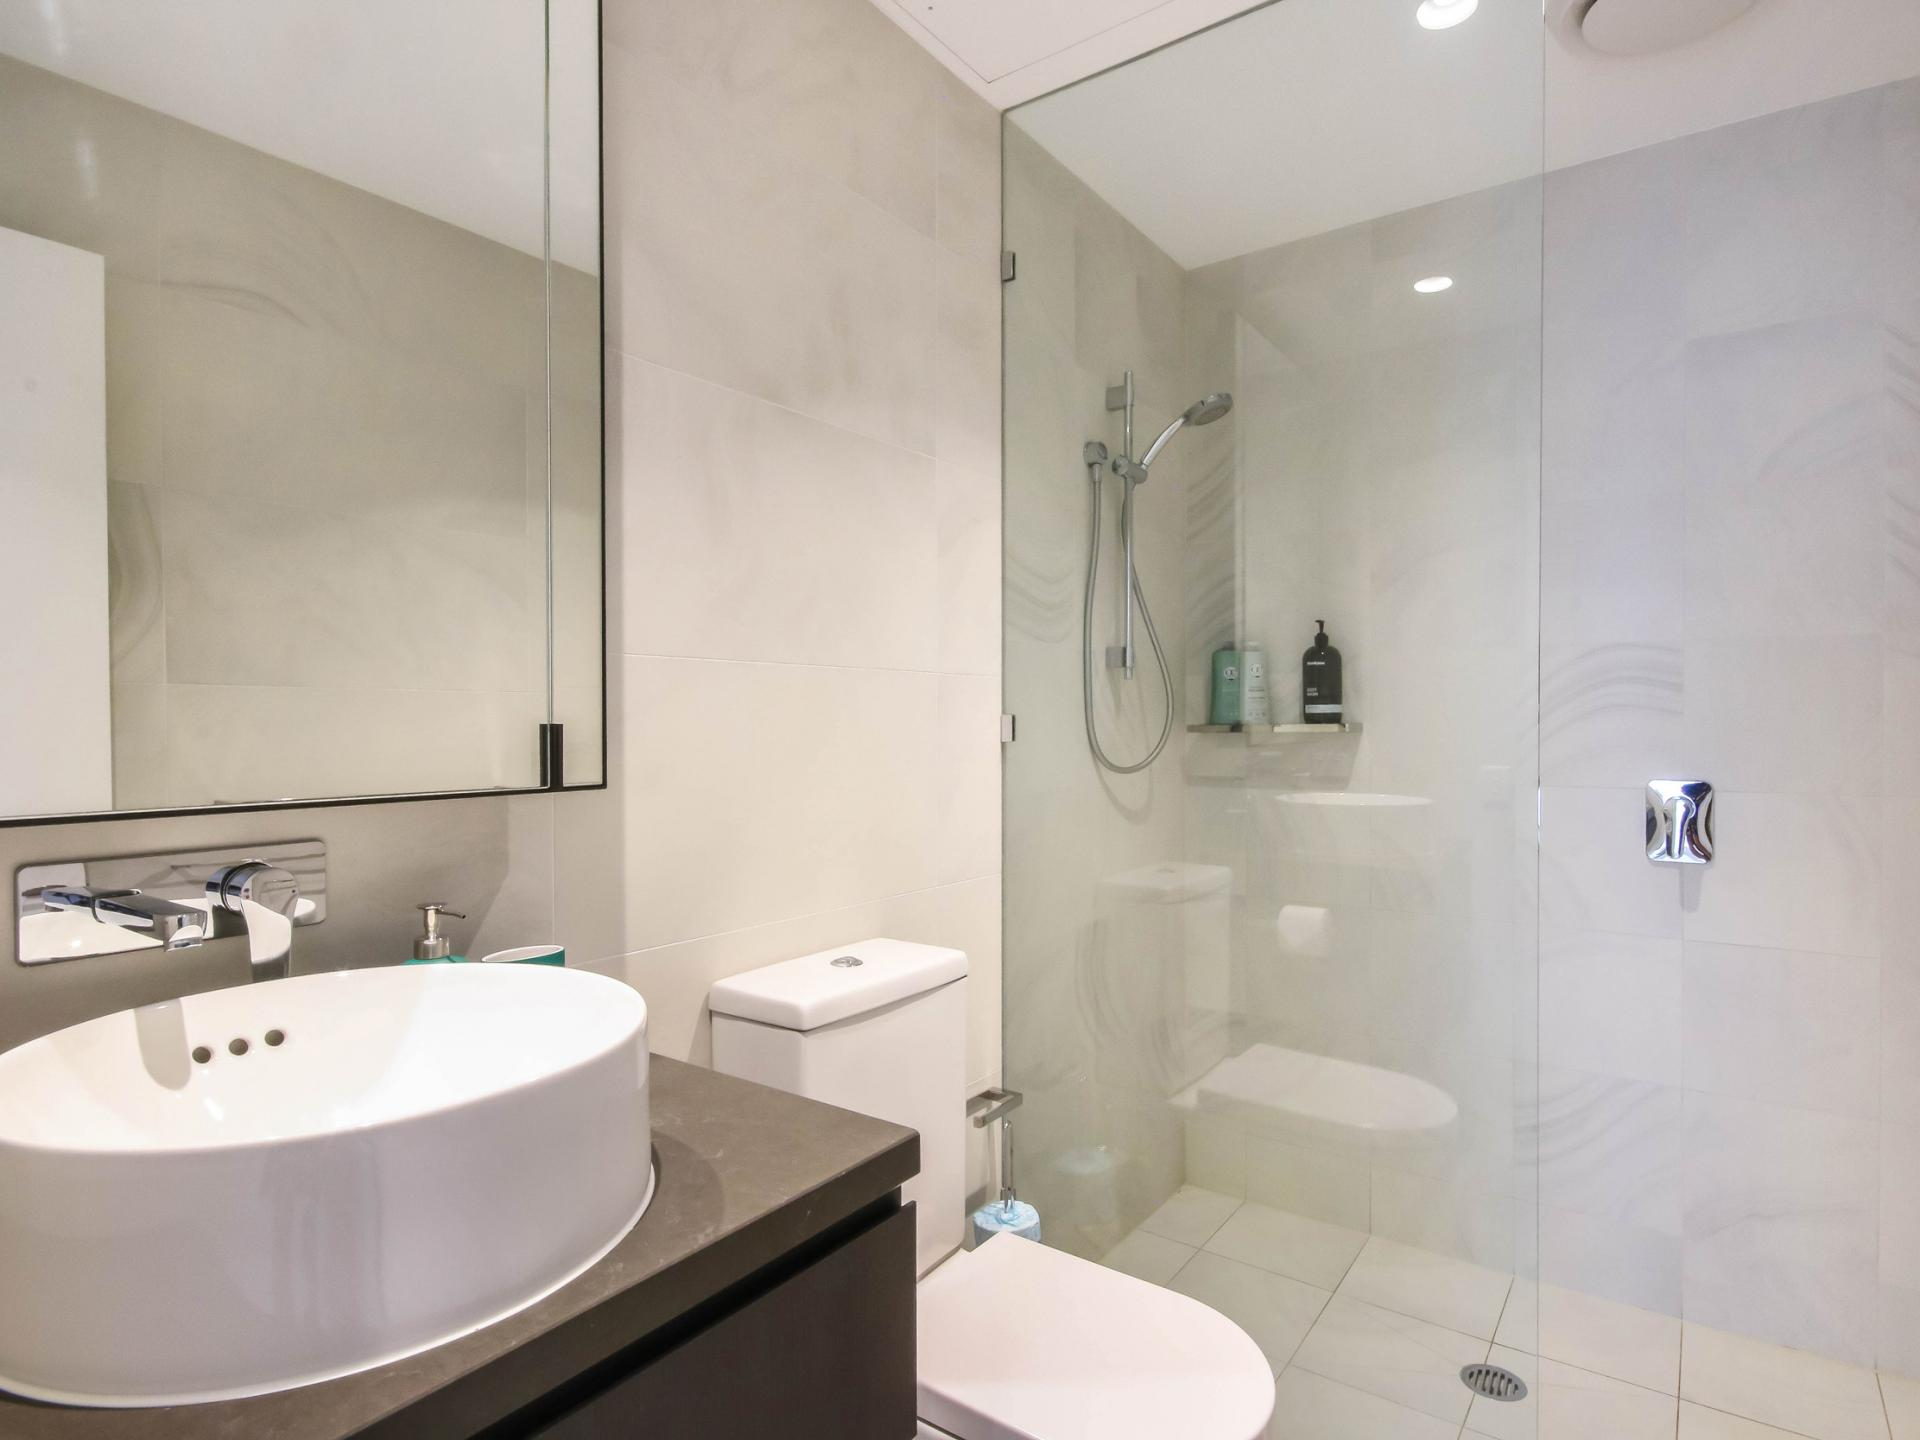 Bathroom at The Mary Street Apartment, Frog's Hollow, Brisbane